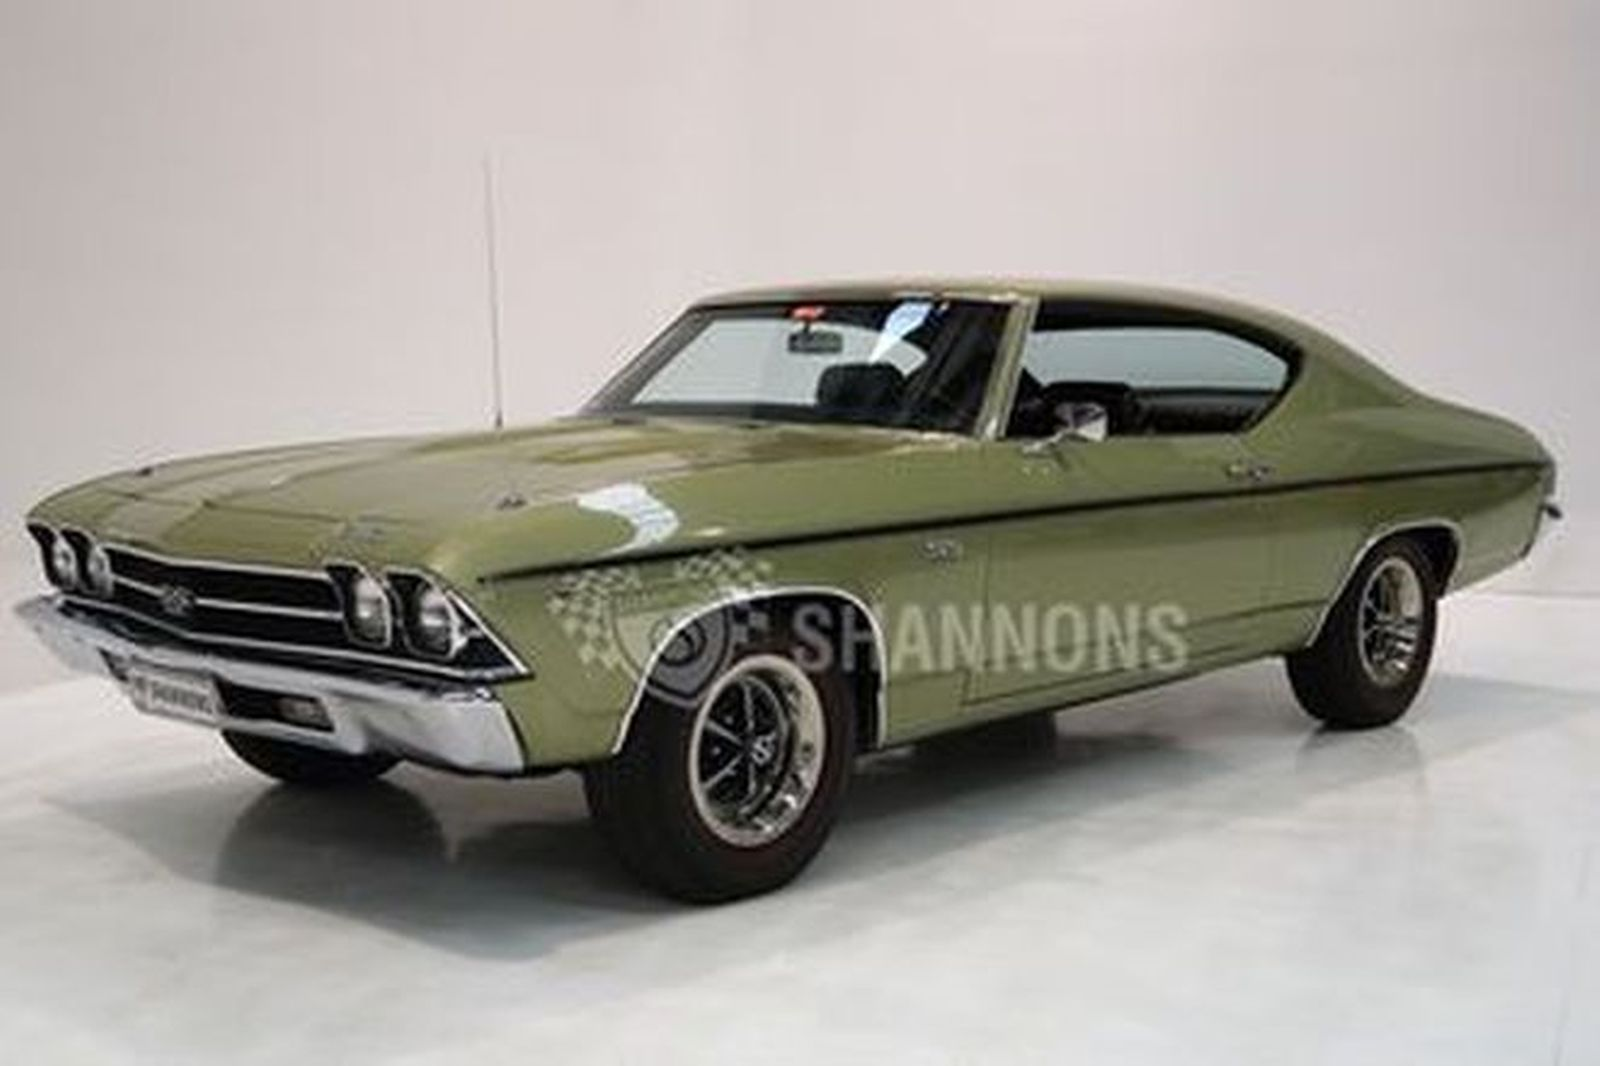 Chevrolet Chevelle SS 396 Coupe (LHD)